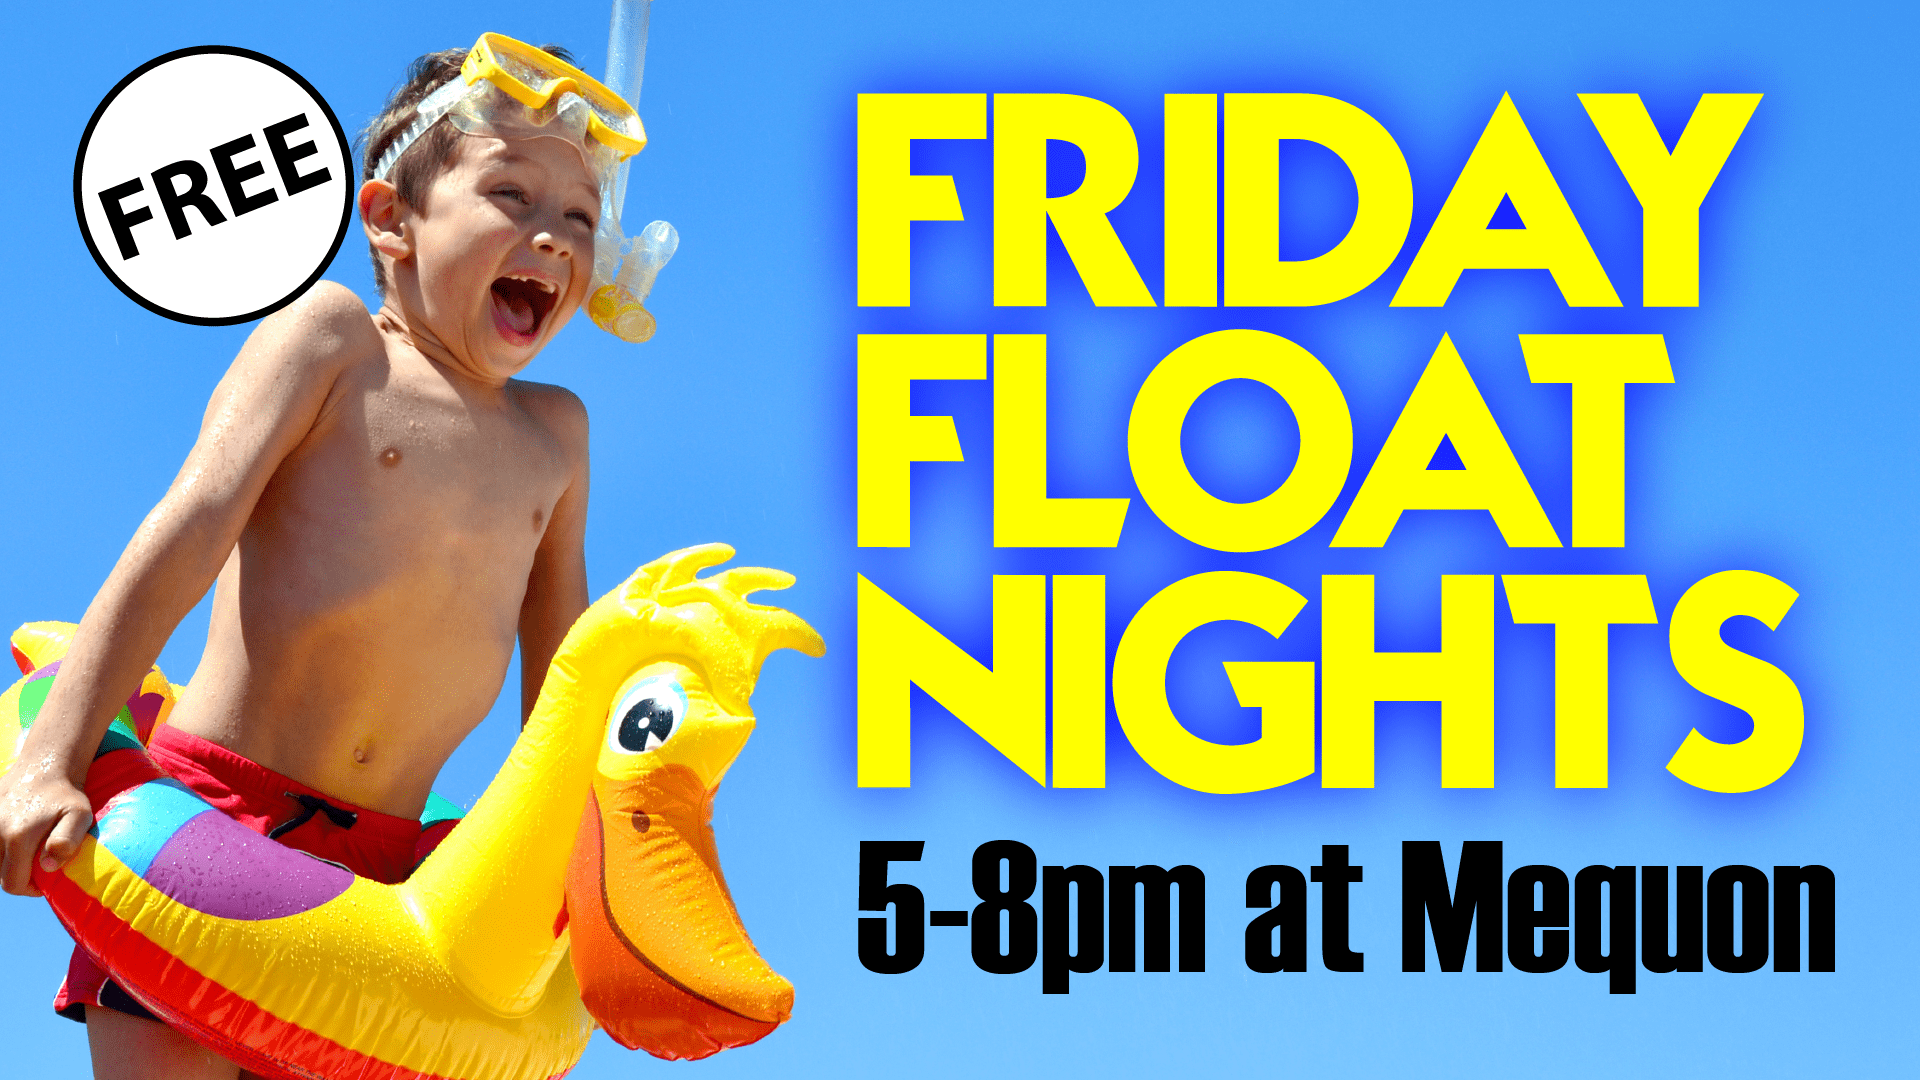 Friday Float Nights - Elite Mequon Summer 2020